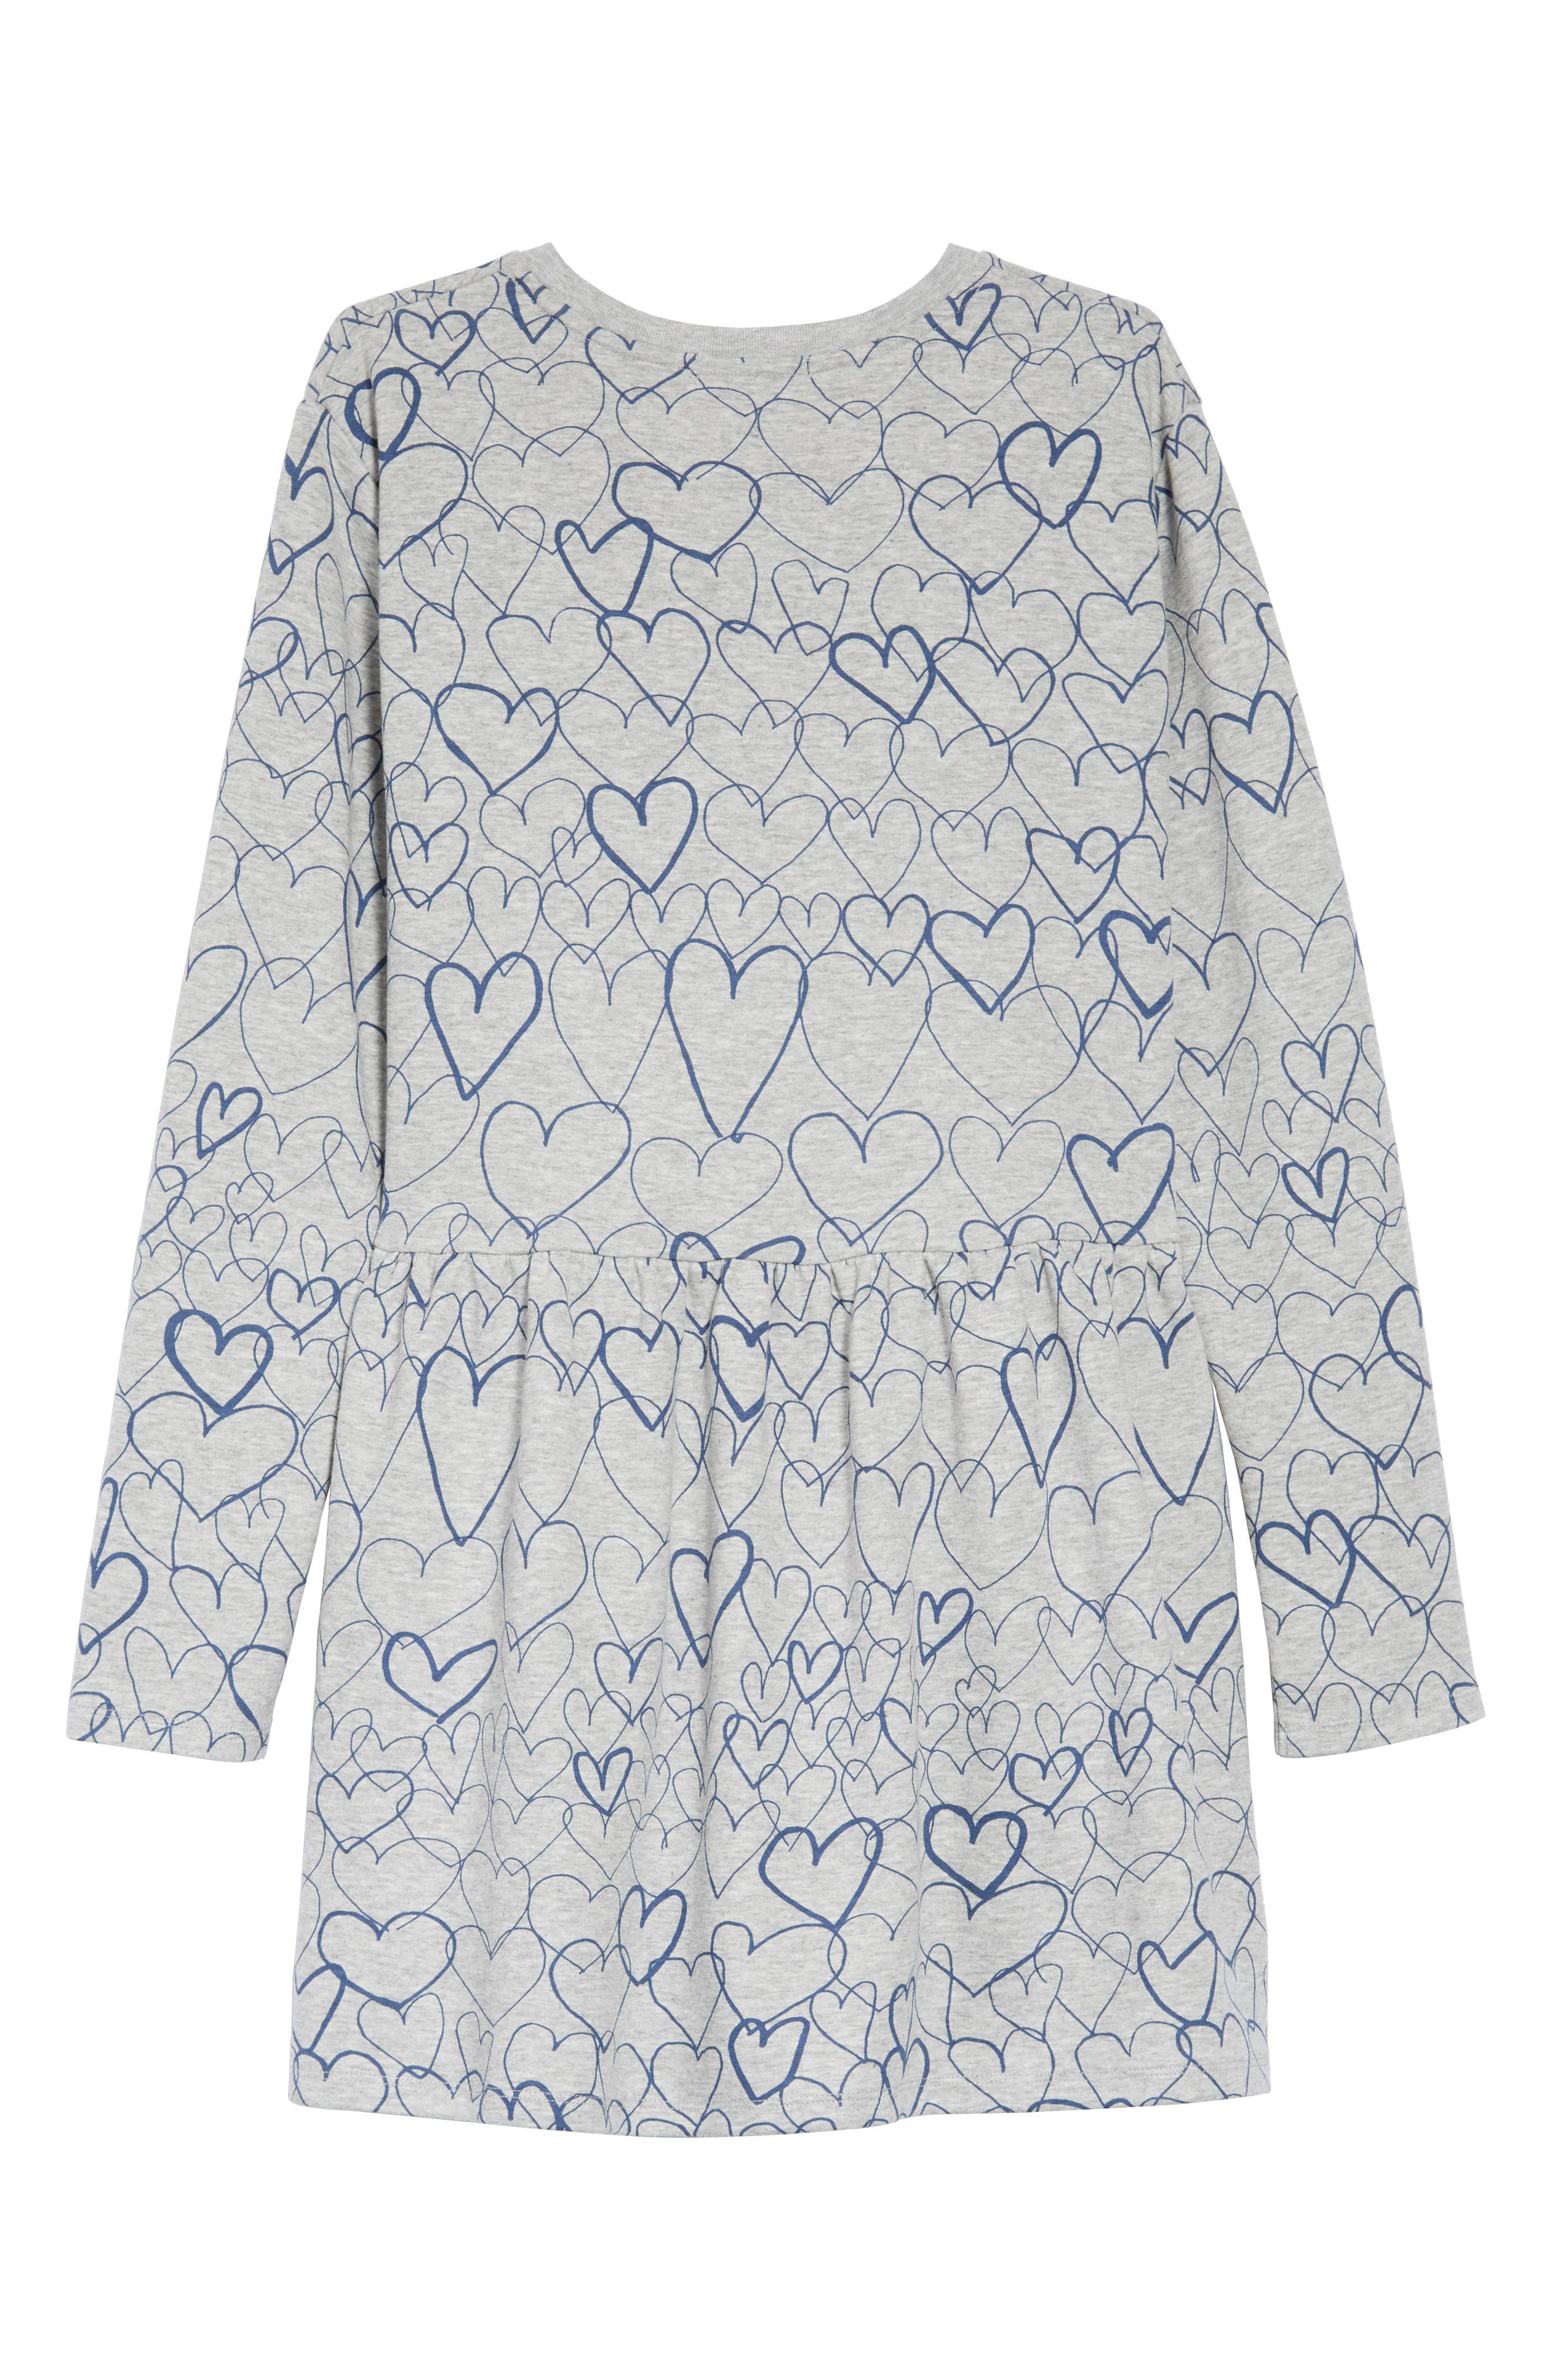 Marion Heart Print Dress,                             Alternate thumbnail 2, color,                             GREY BLUE